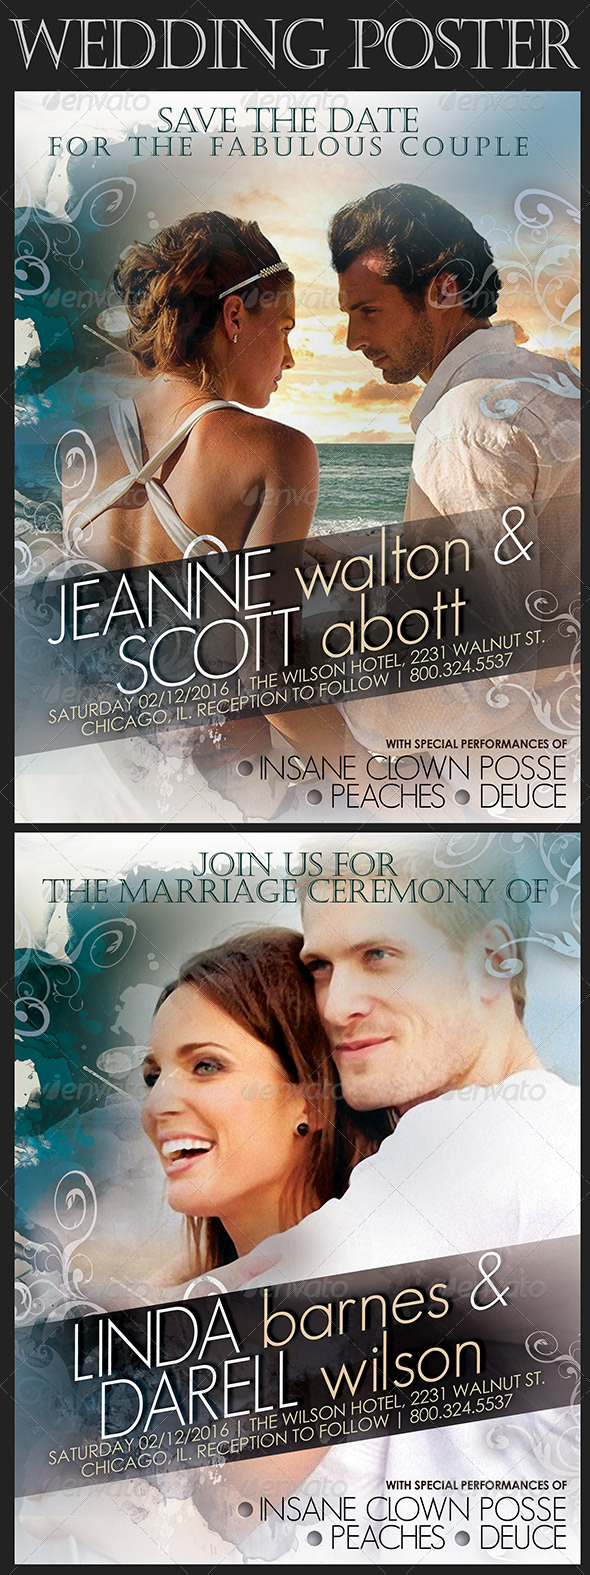 GraphicRiver Wedding Poster in Movie Style 7869992